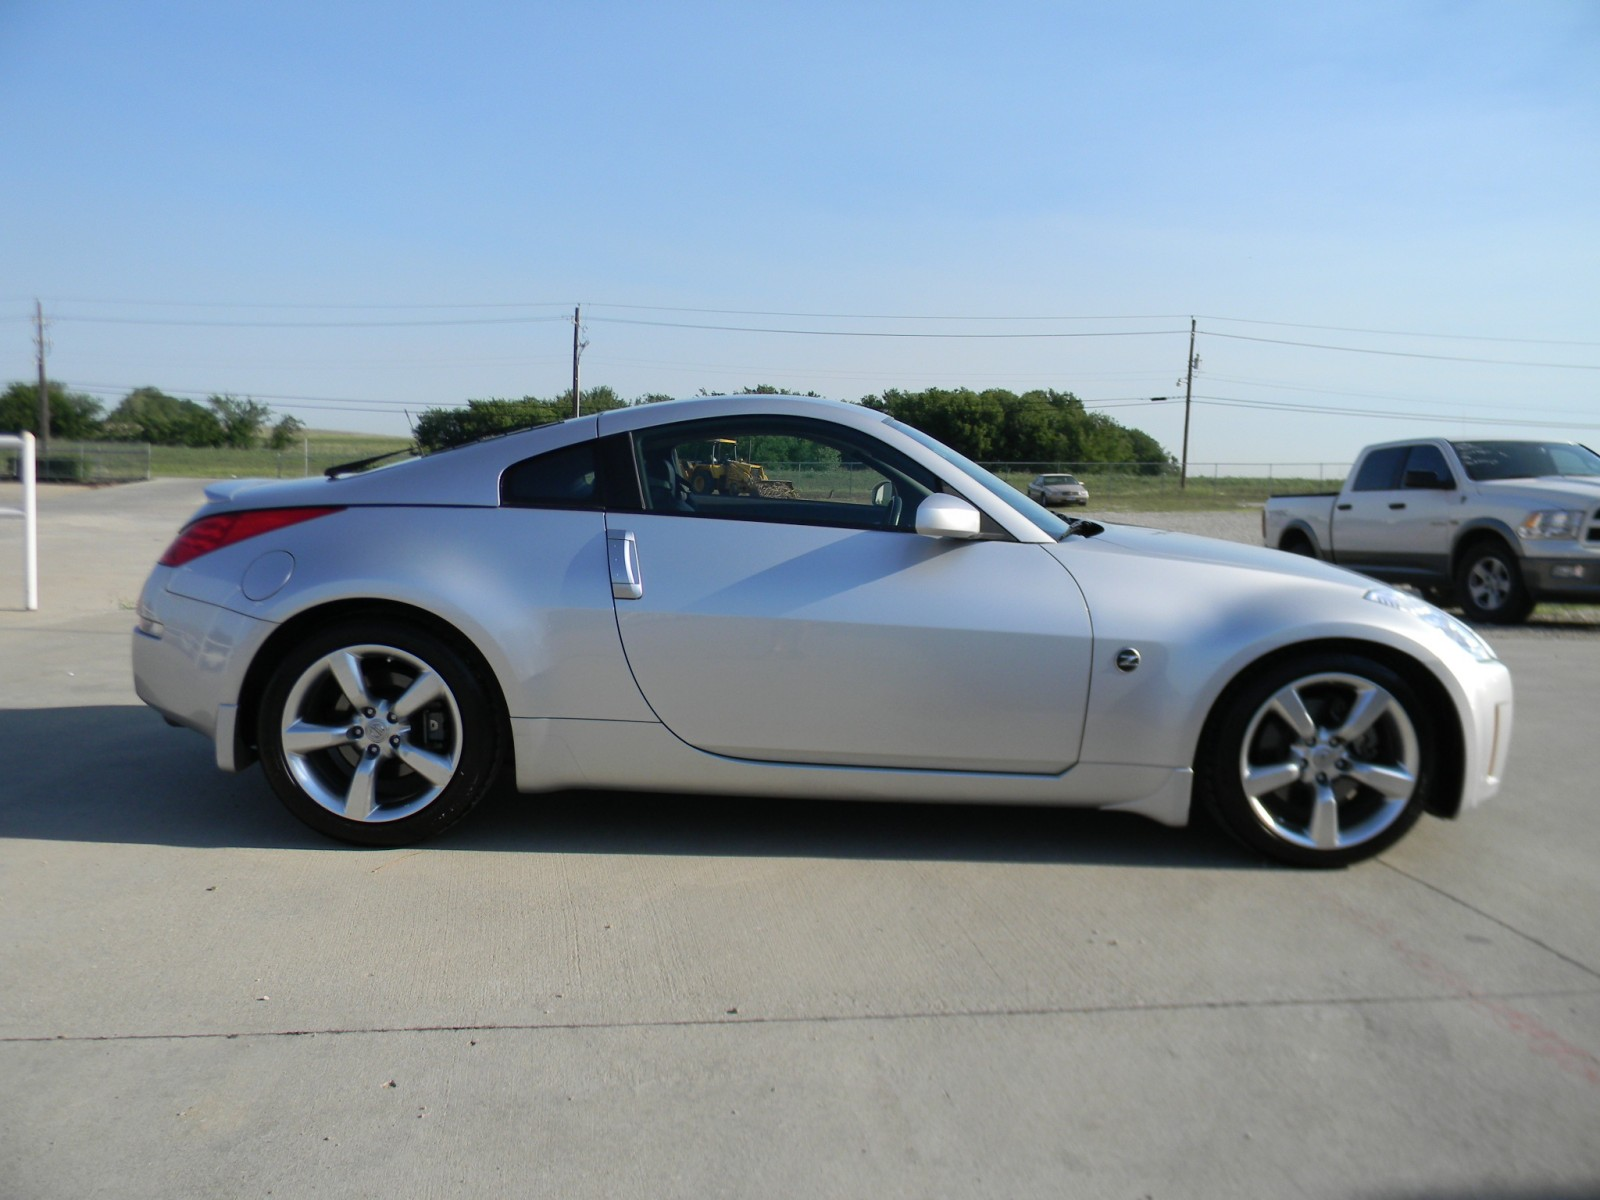 2006 Nissan 350Z Coupe Coupe 3-door